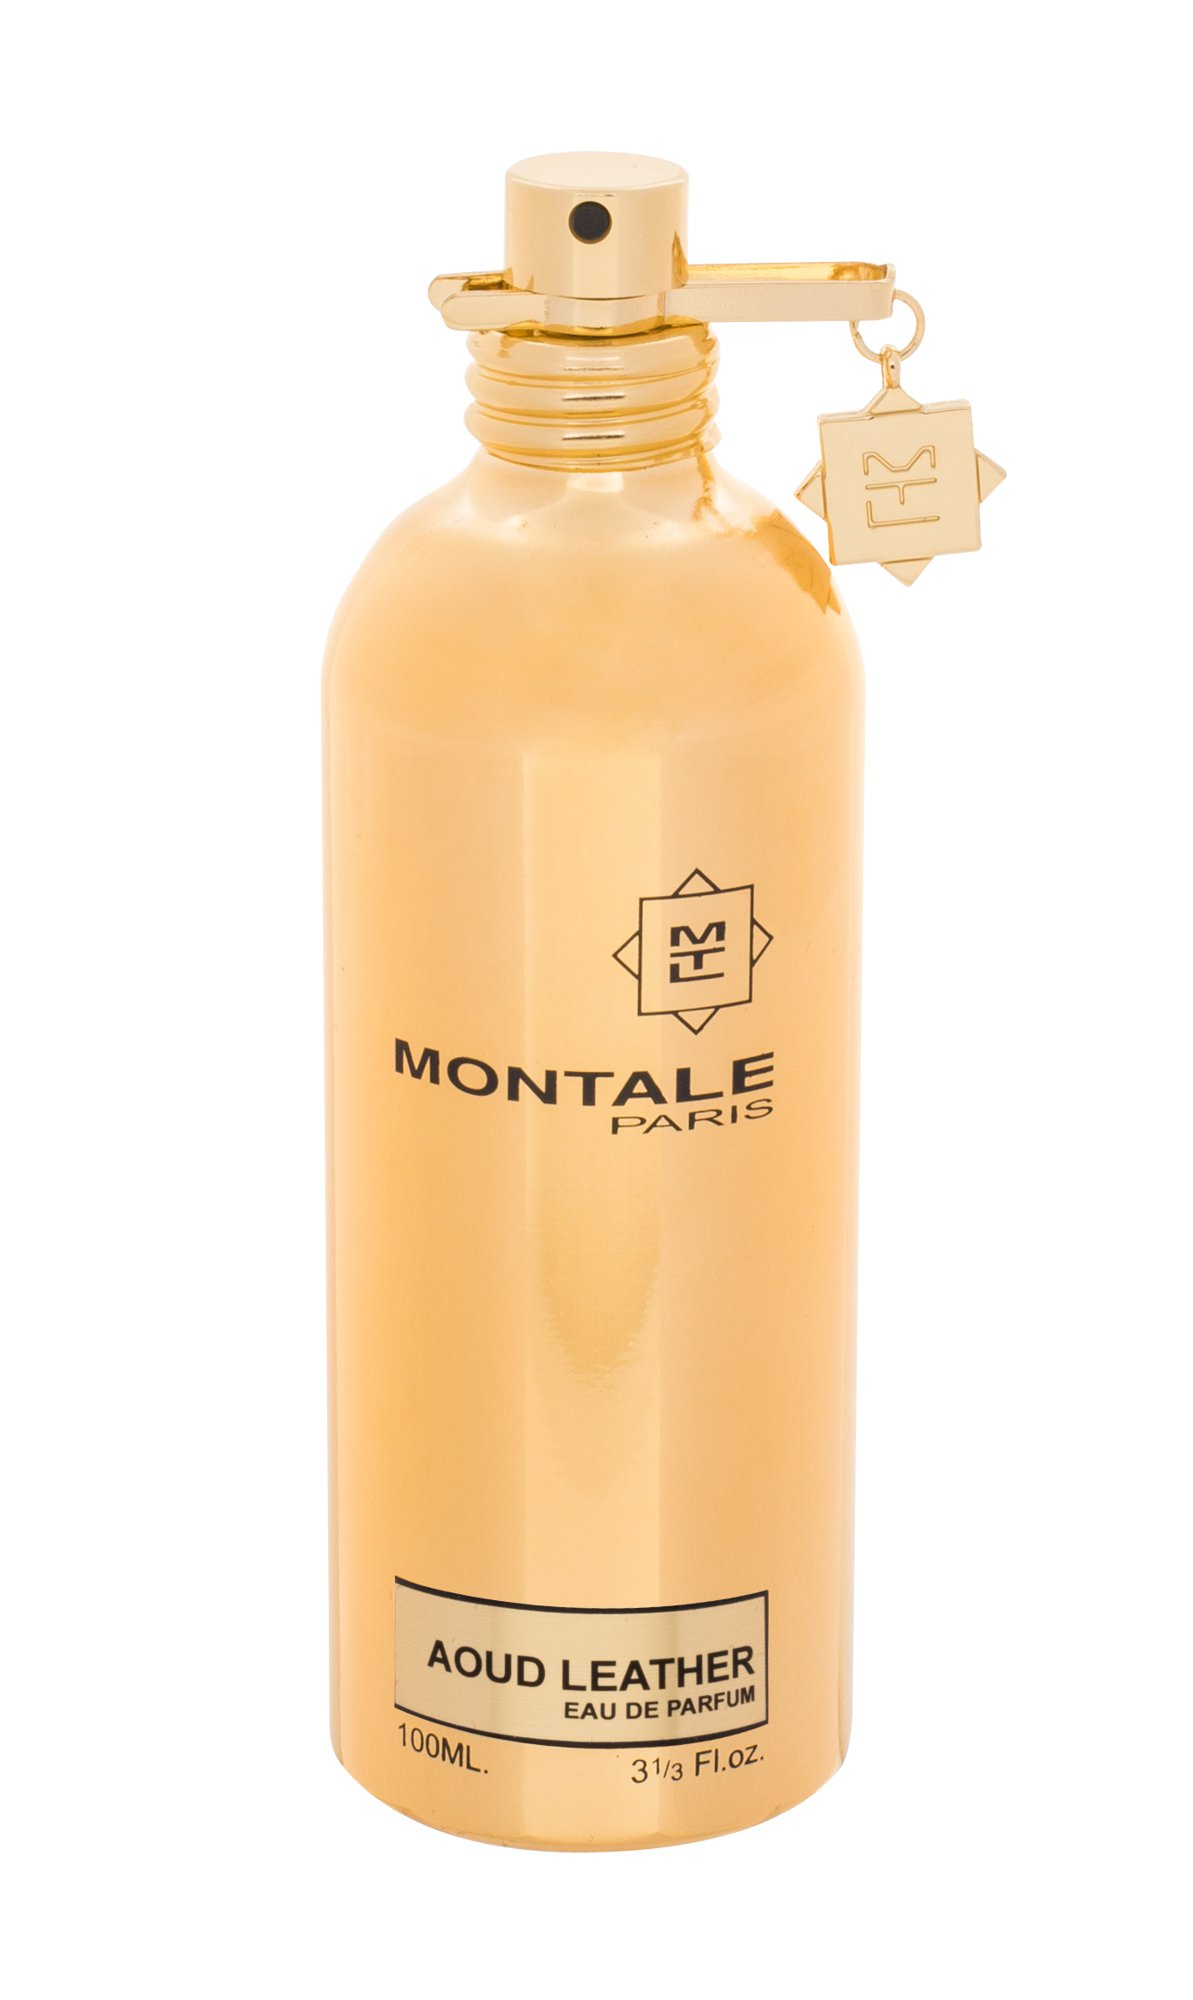 Montale Paris Aoud Leather, edp 100ml